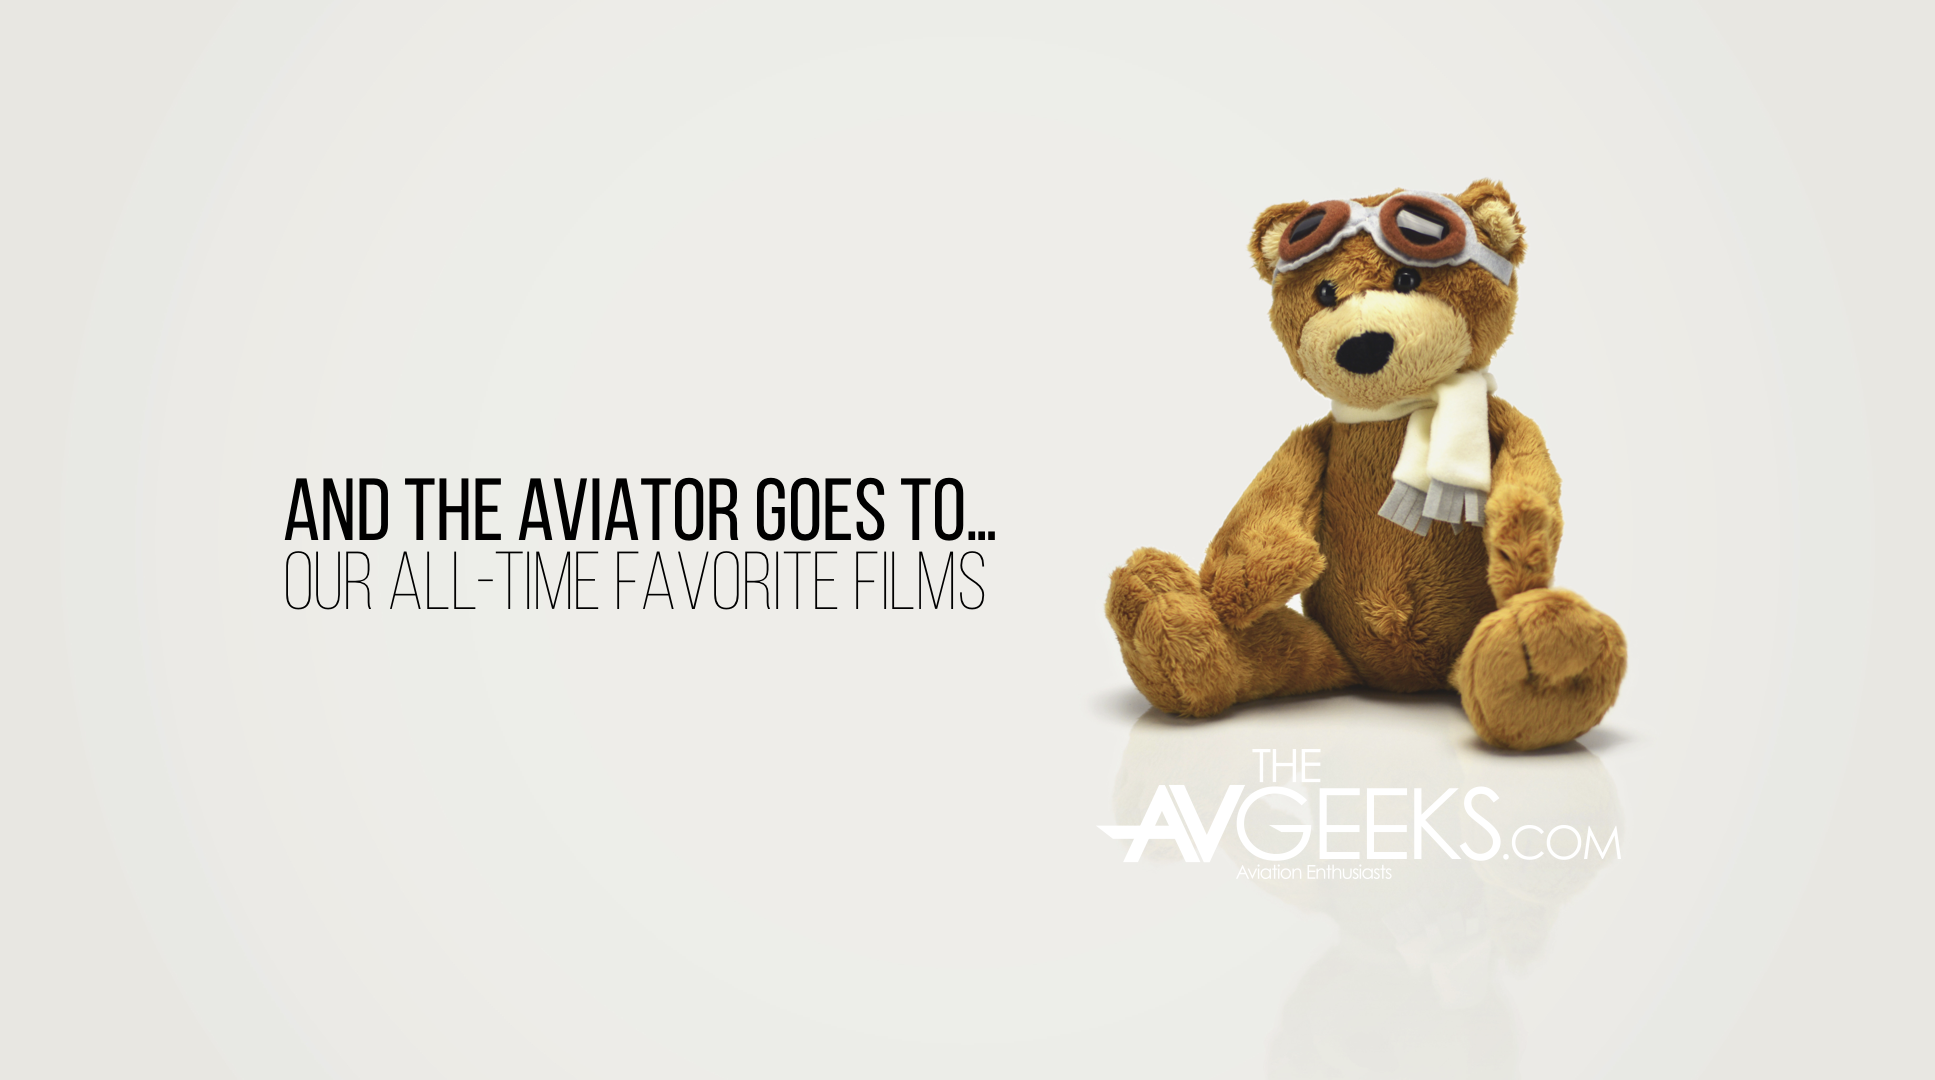 And the Aviator Goes to...